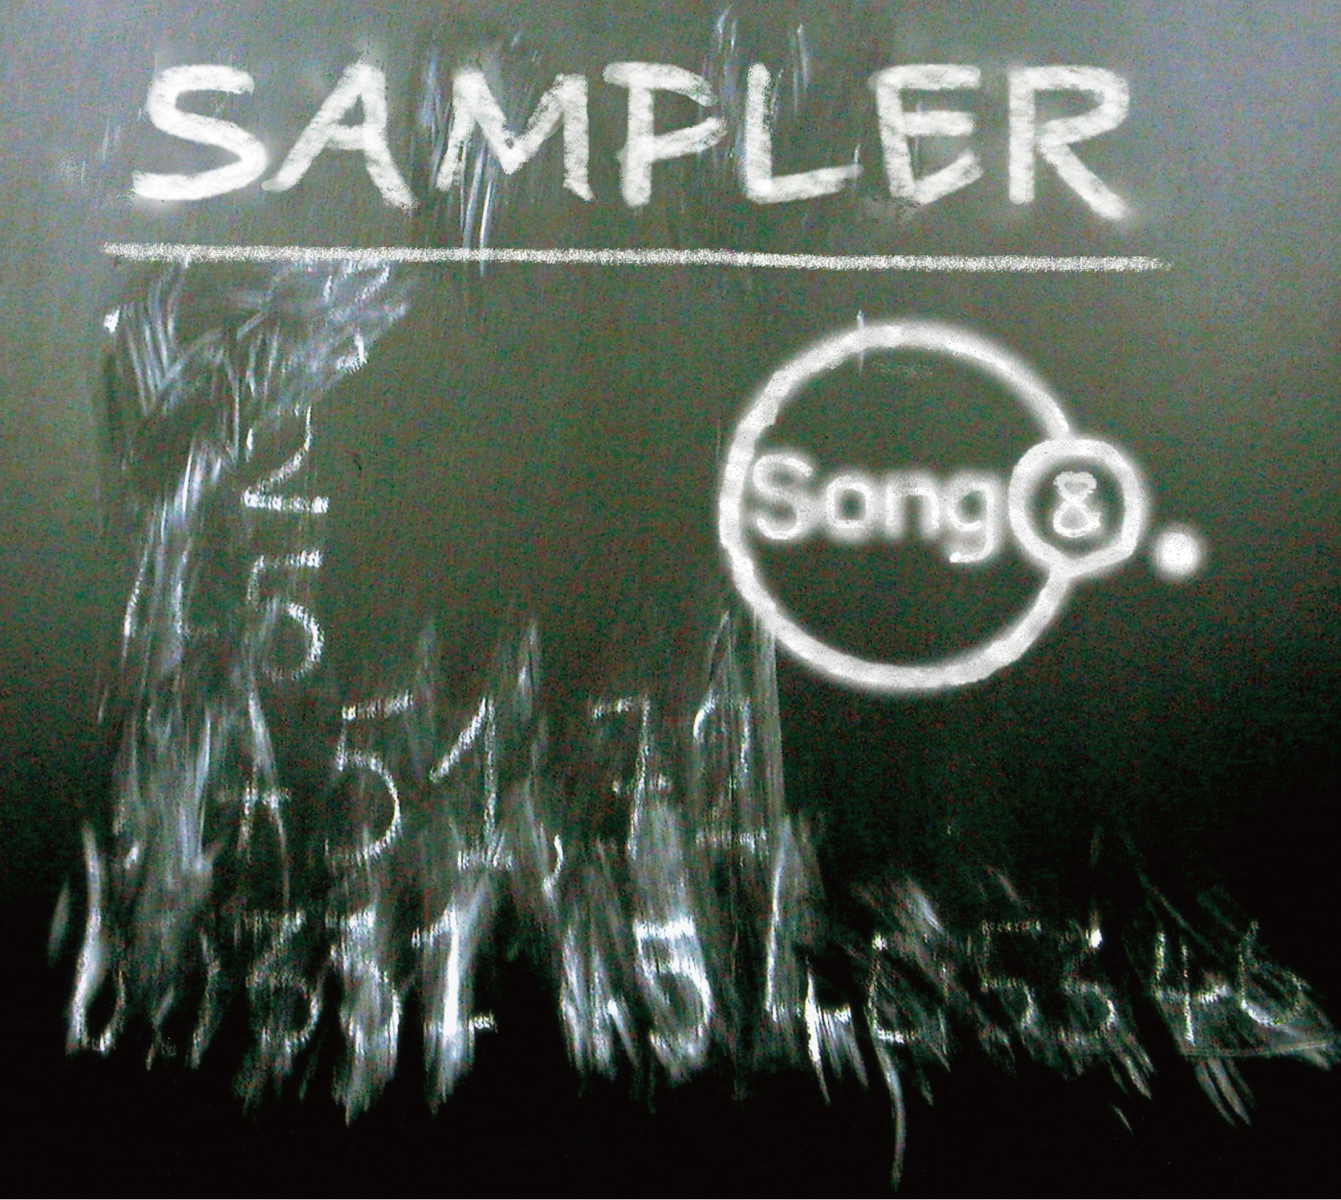 Song & Co. Label Sampler